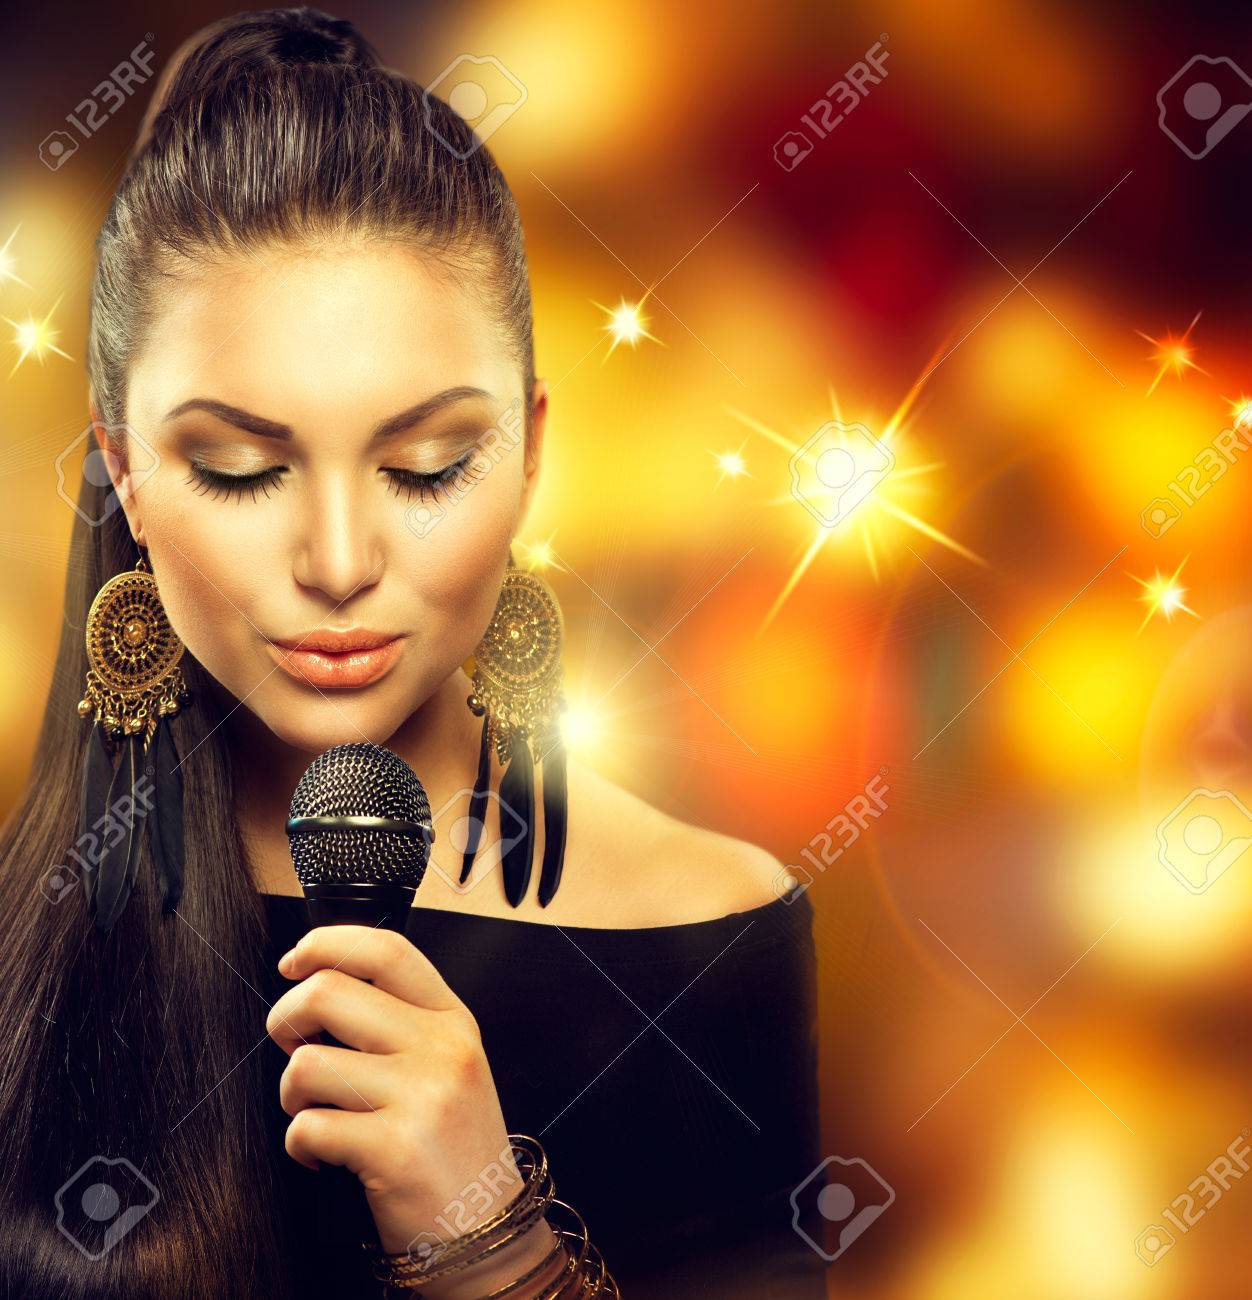 Singing Woman with Microphone over Blinking Background Stock Photo - 29917106